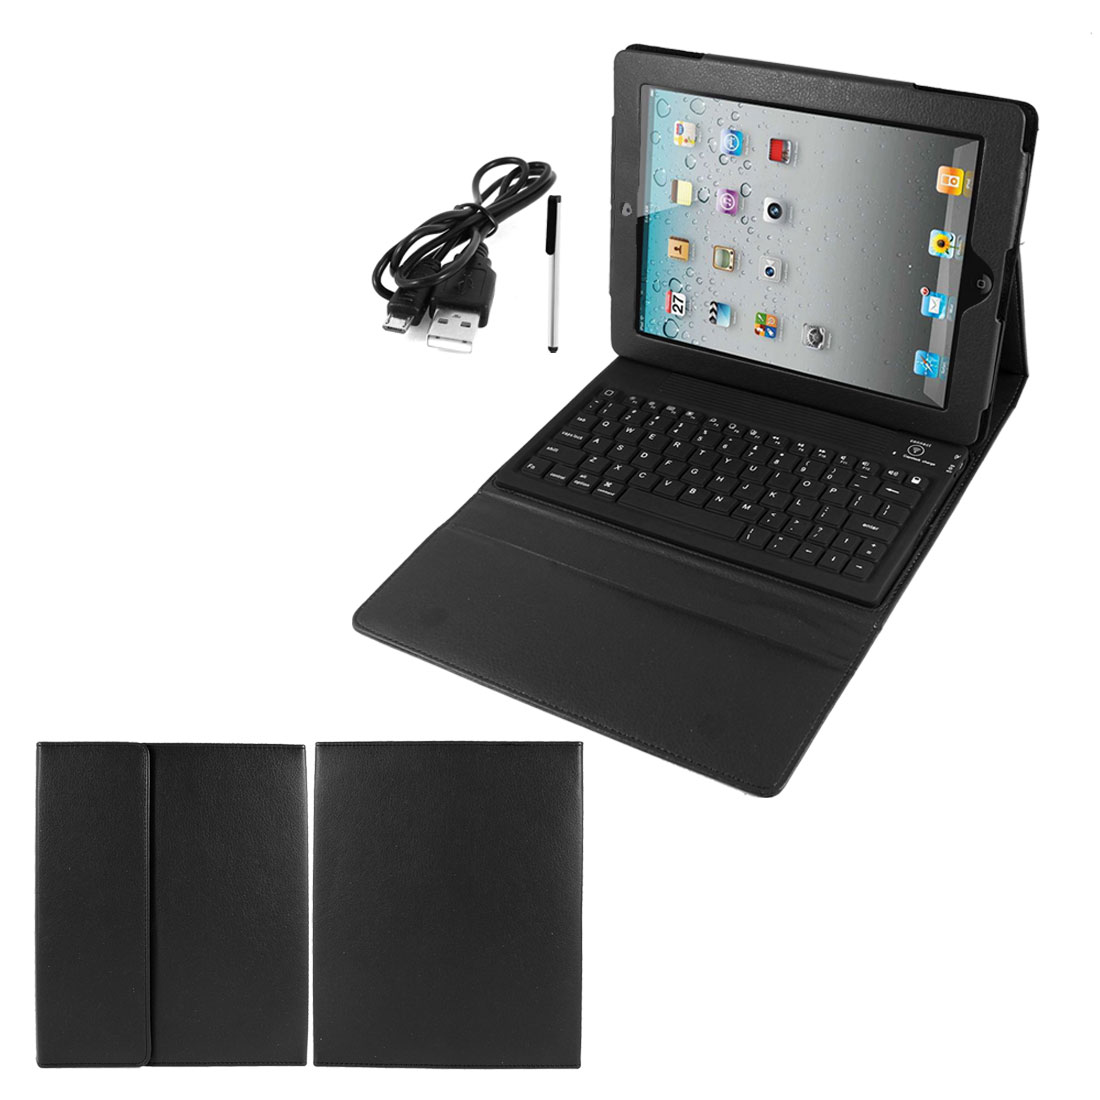 Black PU Leather Magnetic Closure bluetooth Wireless Silicone Keyboard Stand Case Cover for iPad 2 3 4